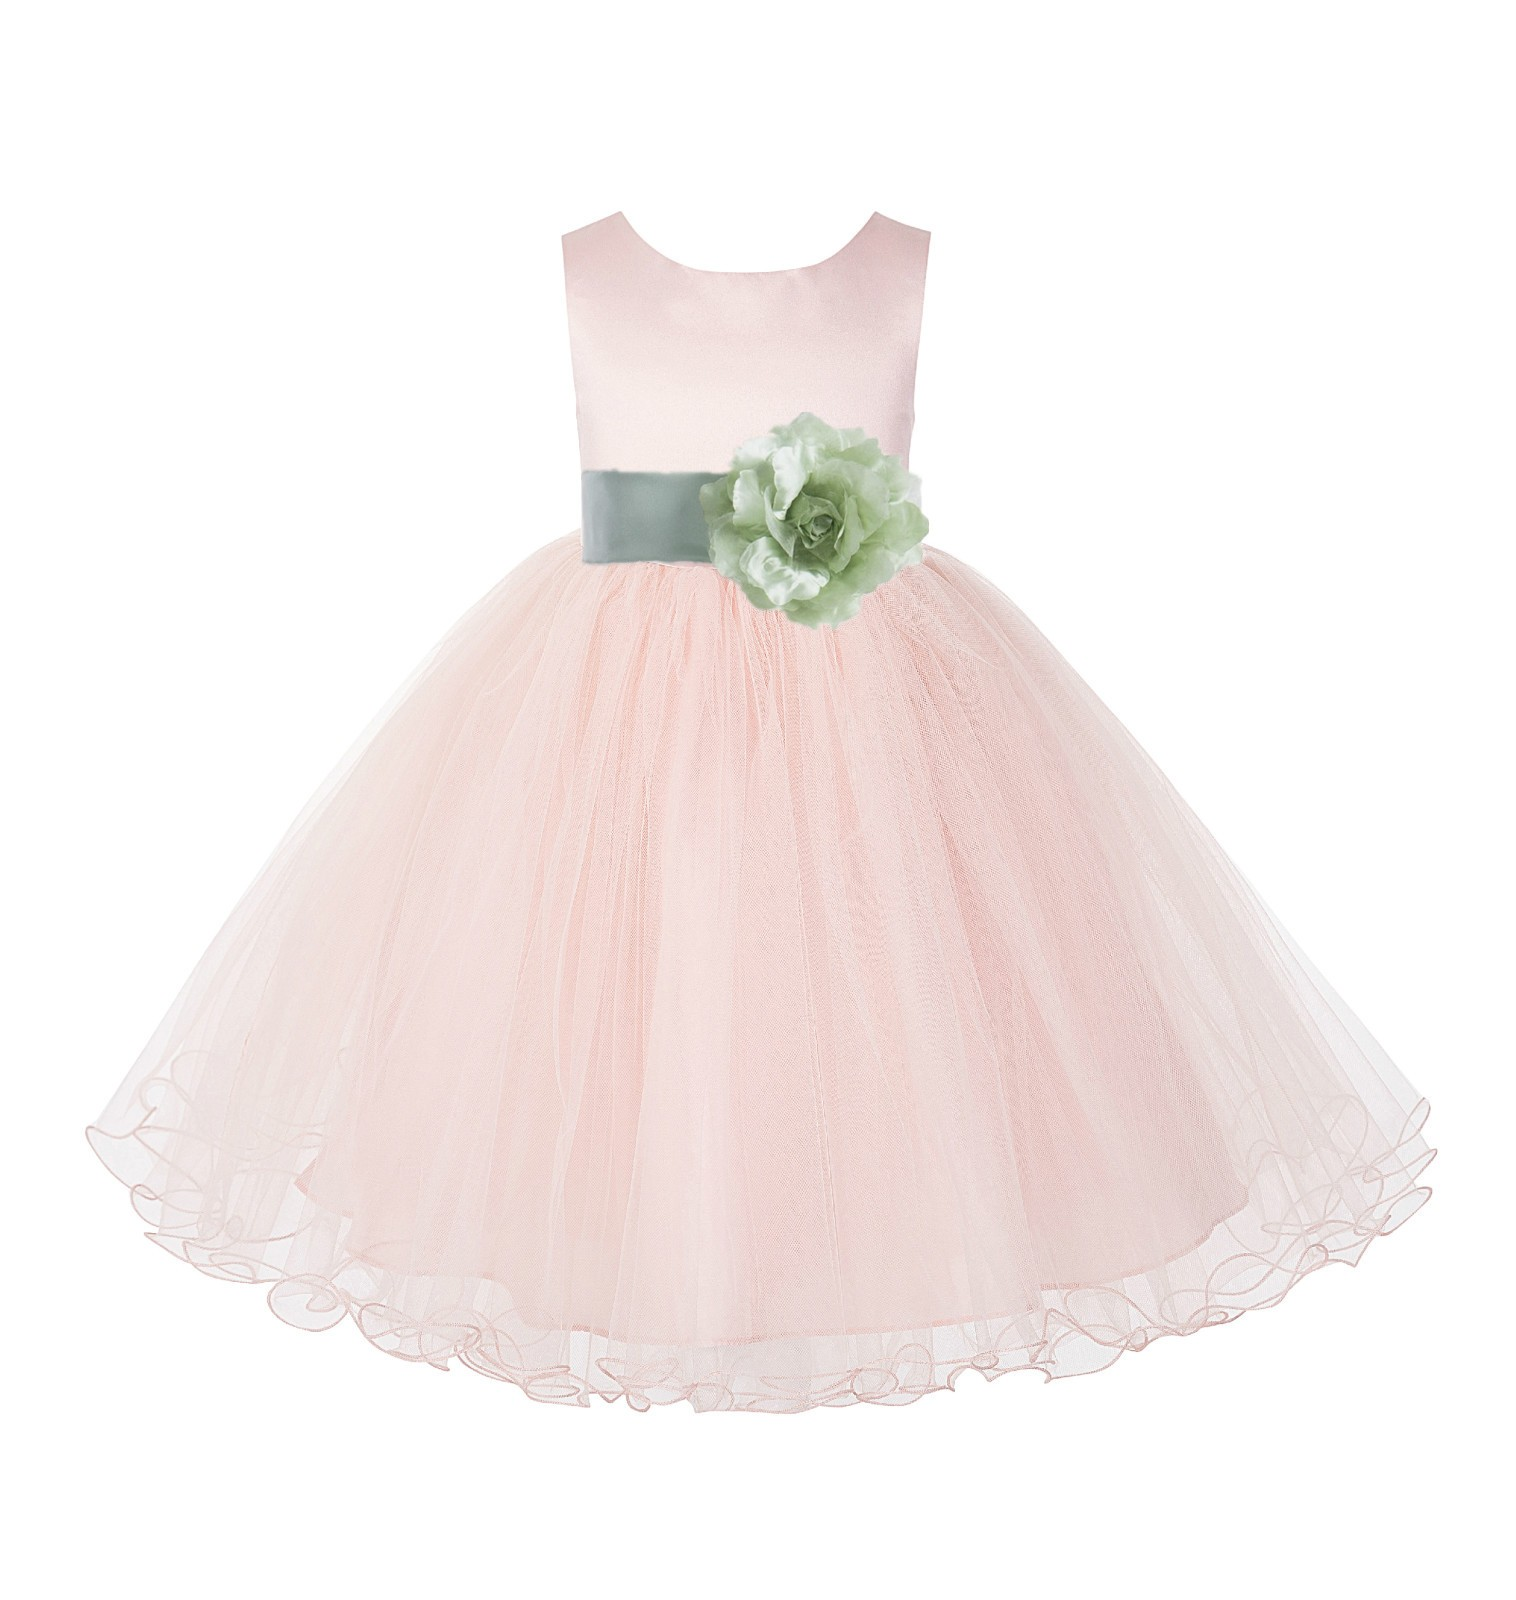 Blush Pink / Sage Tulle Rattail Edge Flower Girl Dress Pageant Recital 829S